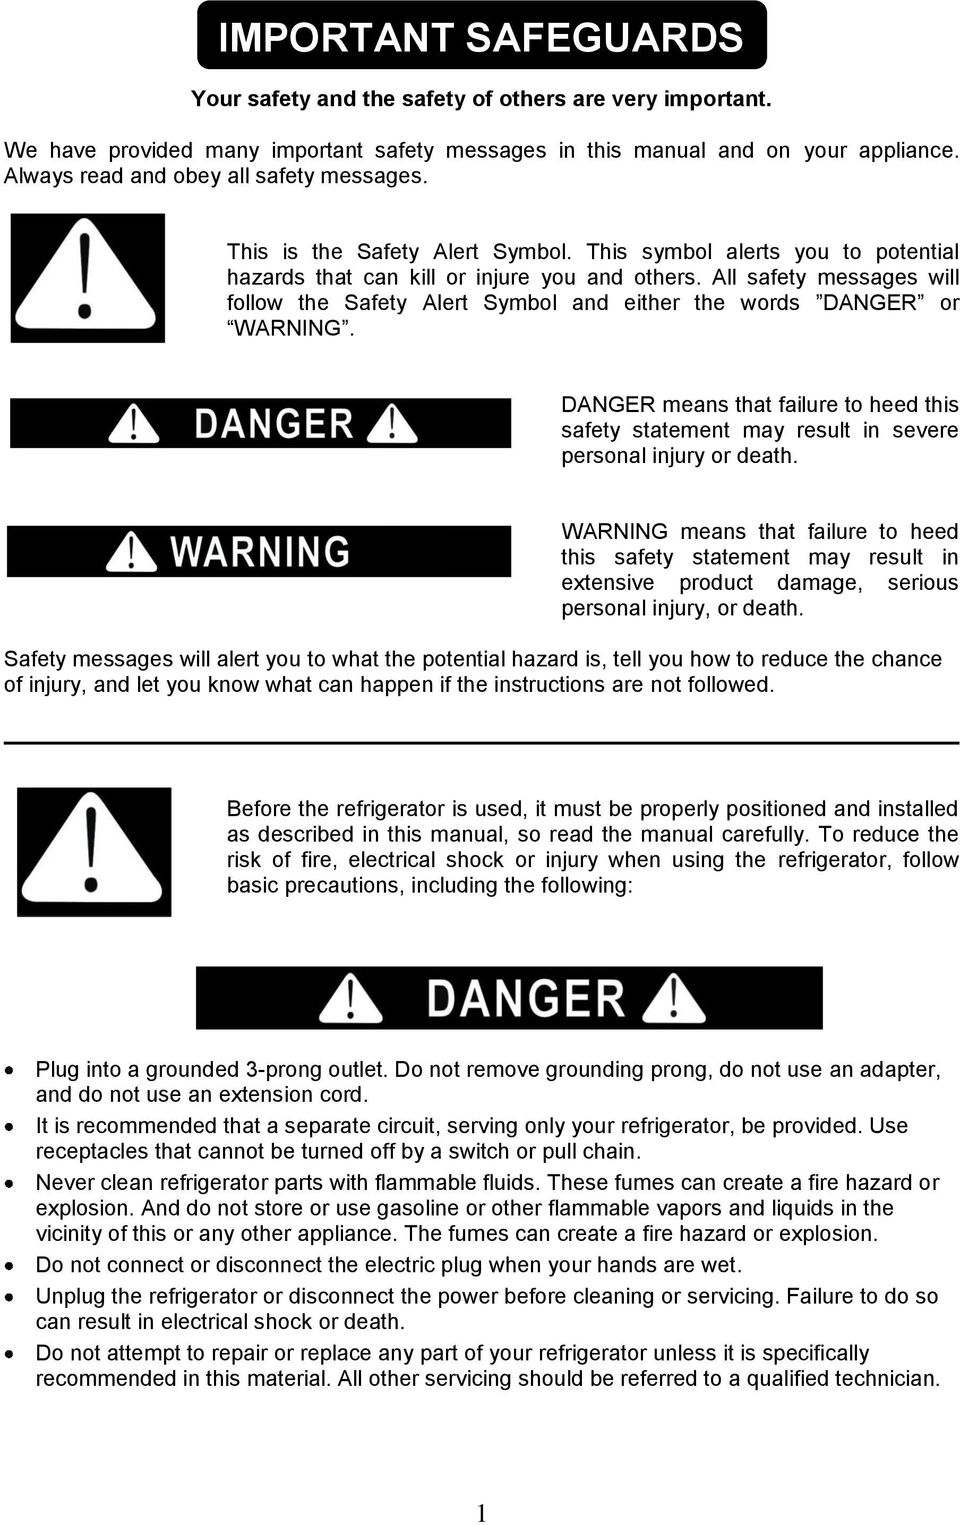 All safety messages will follow the Safety Alert Symbol and either the words DANGER or WARNING. DANGER means that failure to heed this safety statement may result in severe personal injury or death.